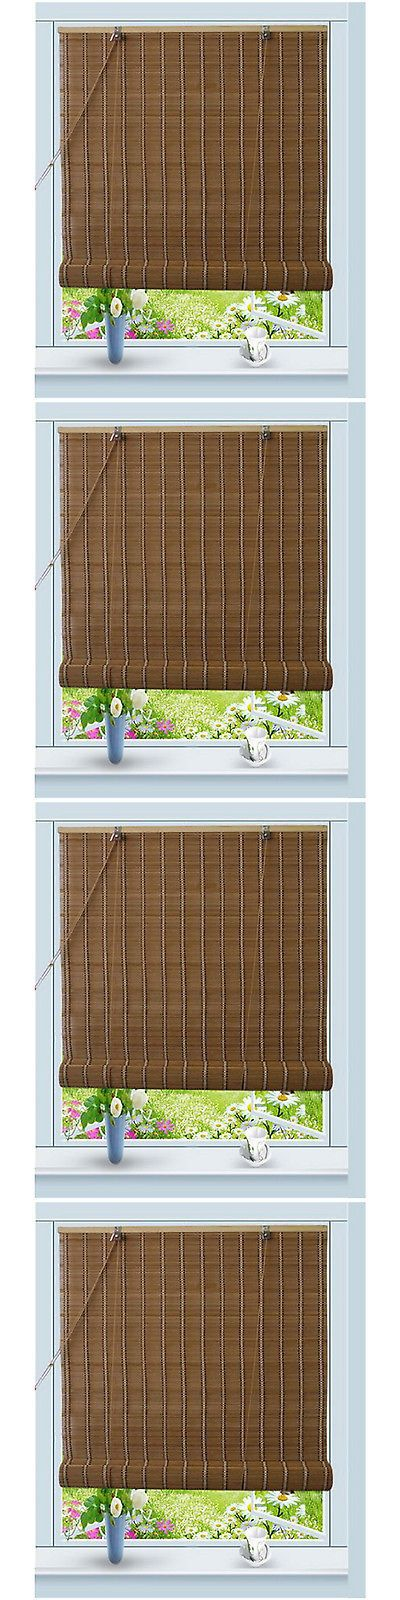 Blinds and Shades 20585: Window Sun Shade Bamboo Brown Blind Natural Roll Up W32 X H72 -> BUY IT NOW ONLY: $37.11 on eBay!